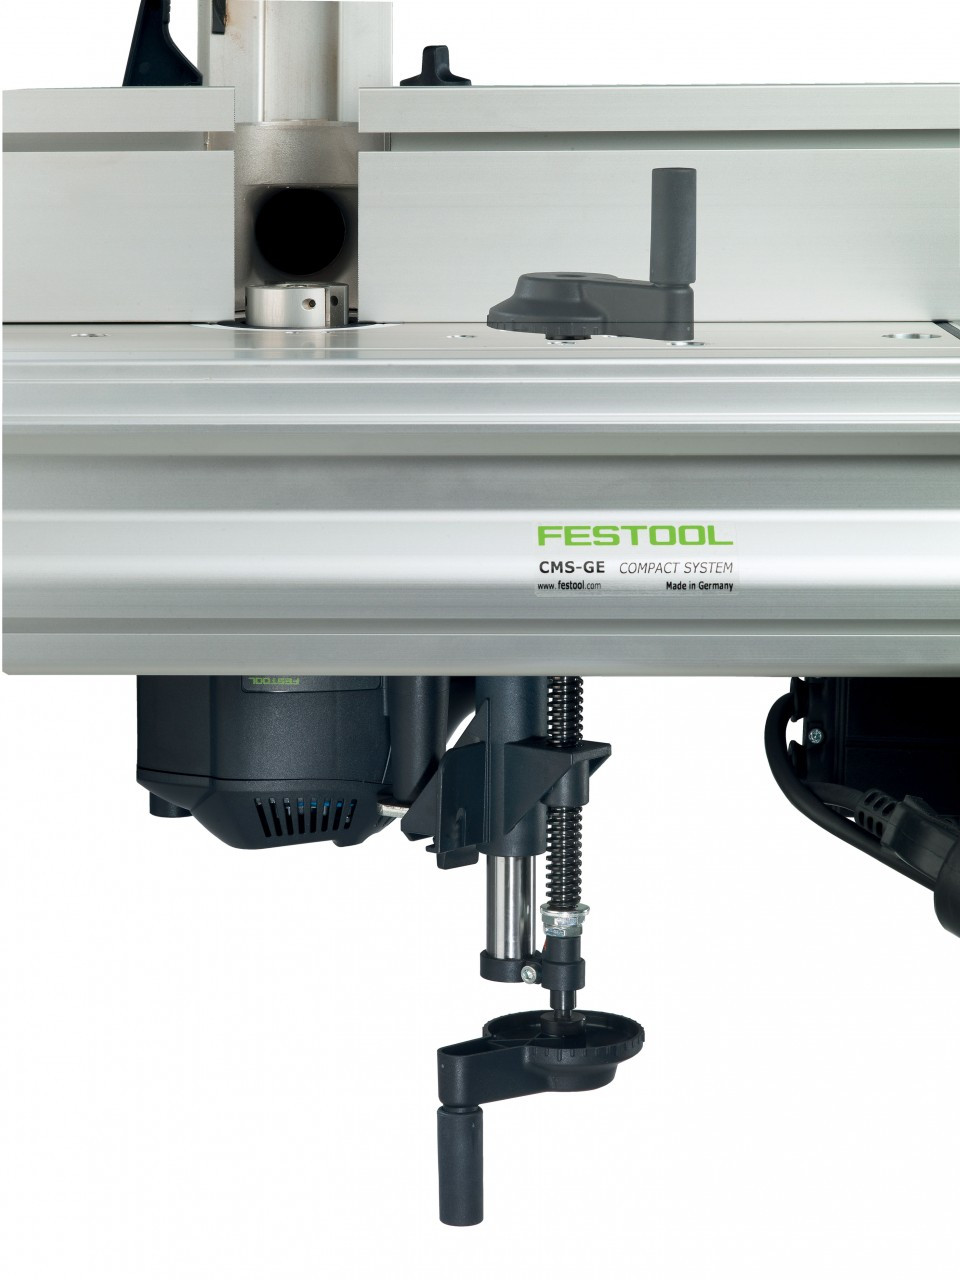 Festool cms vl mft3 router table basic 203157 replaces 57000025 greentooth Images